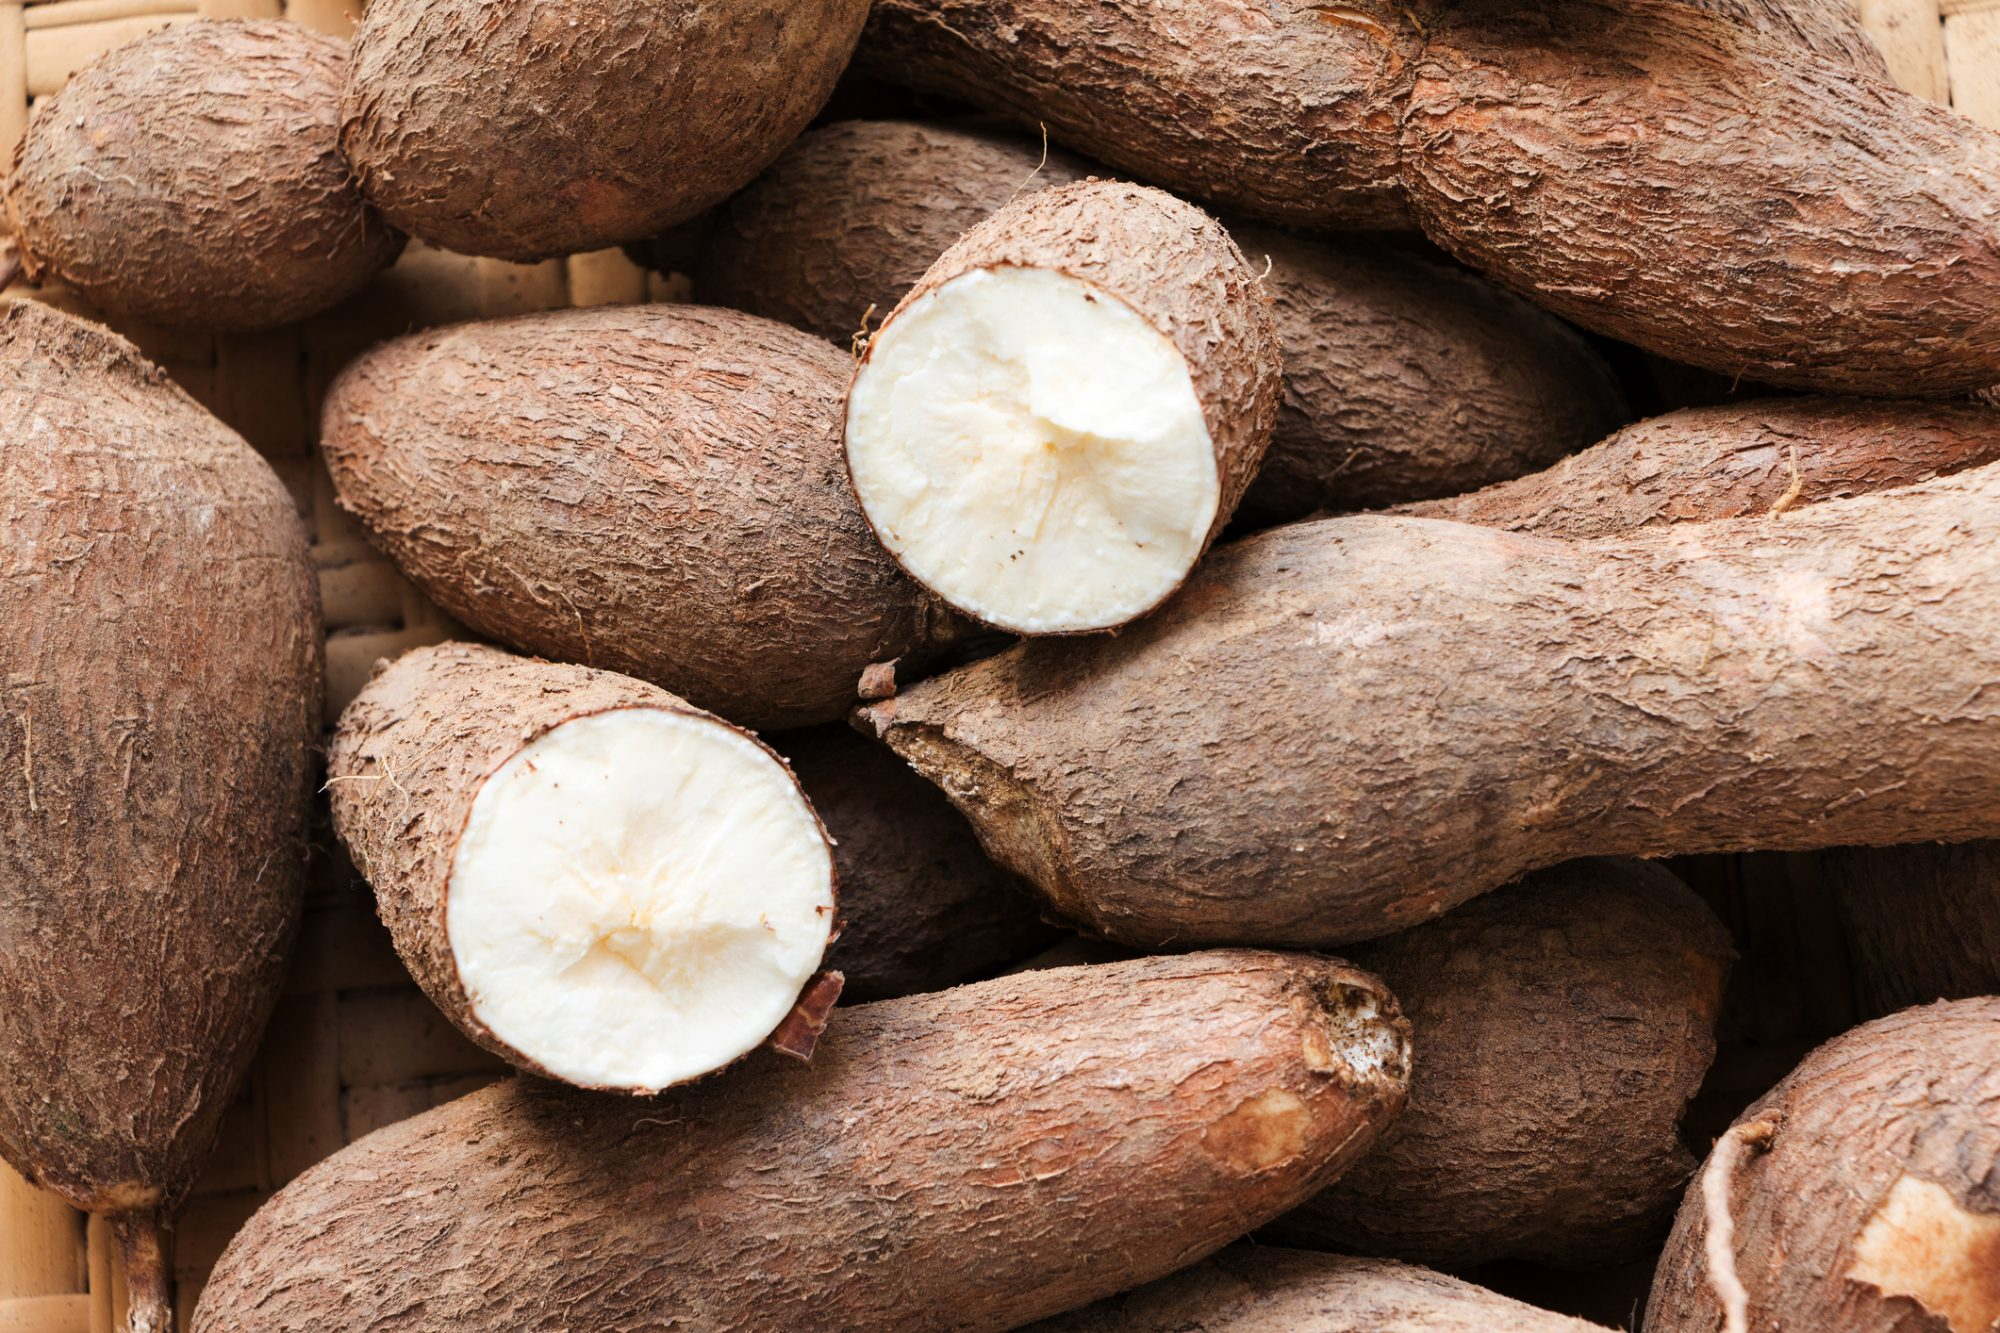 is cassava safe on a yeast diet?